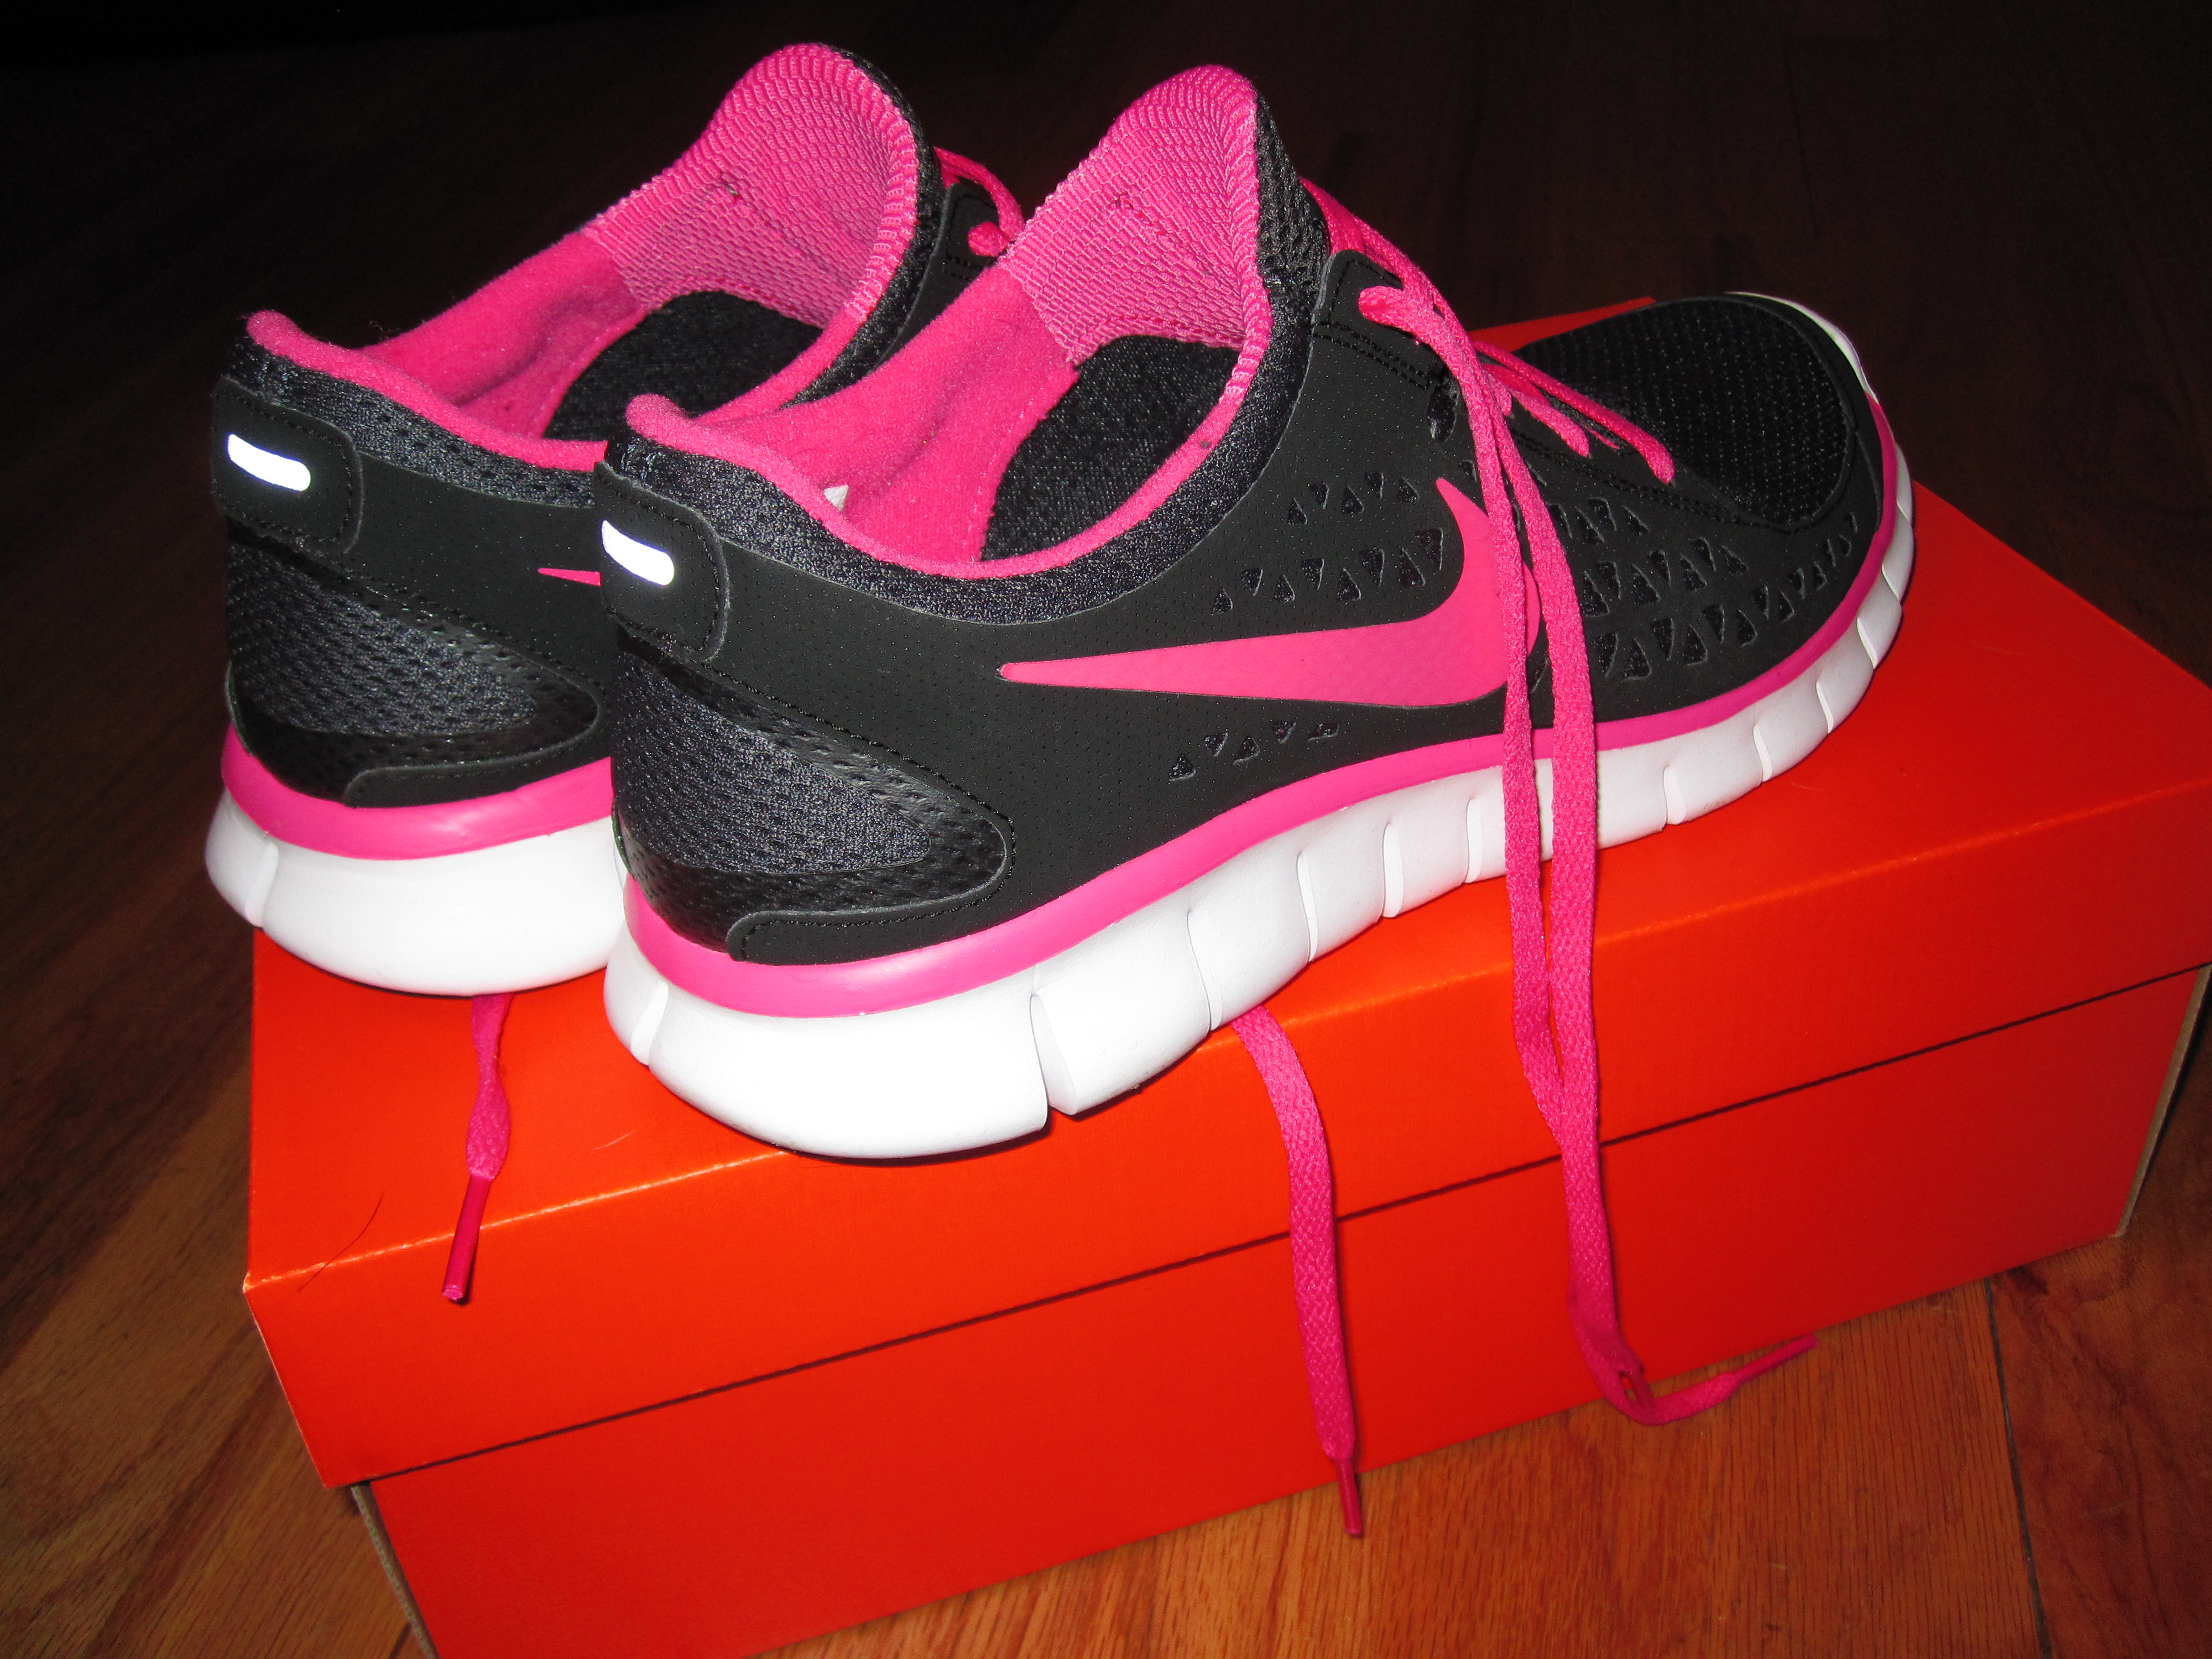 a11979d50fb2 New Nike Free Running Shoes